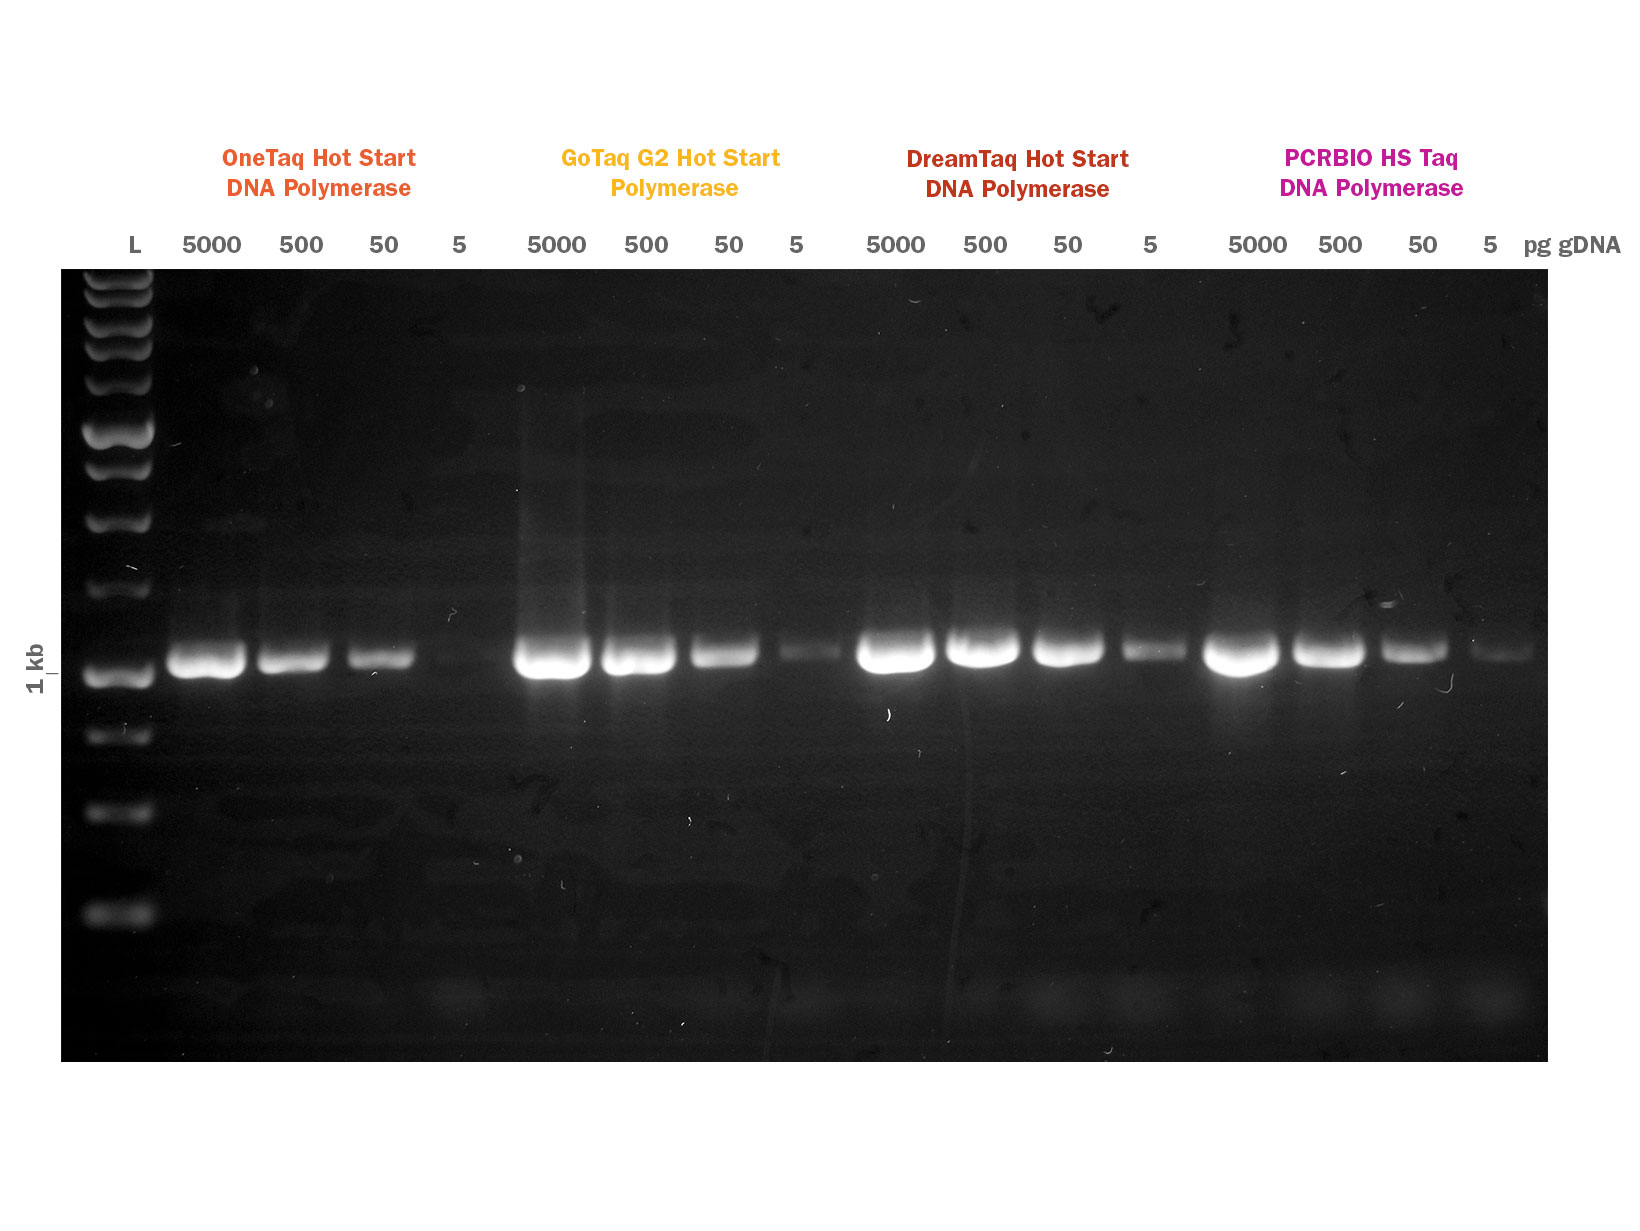 Gel image showing PCRBIO HS Taq DNA polymerase competitor comparison